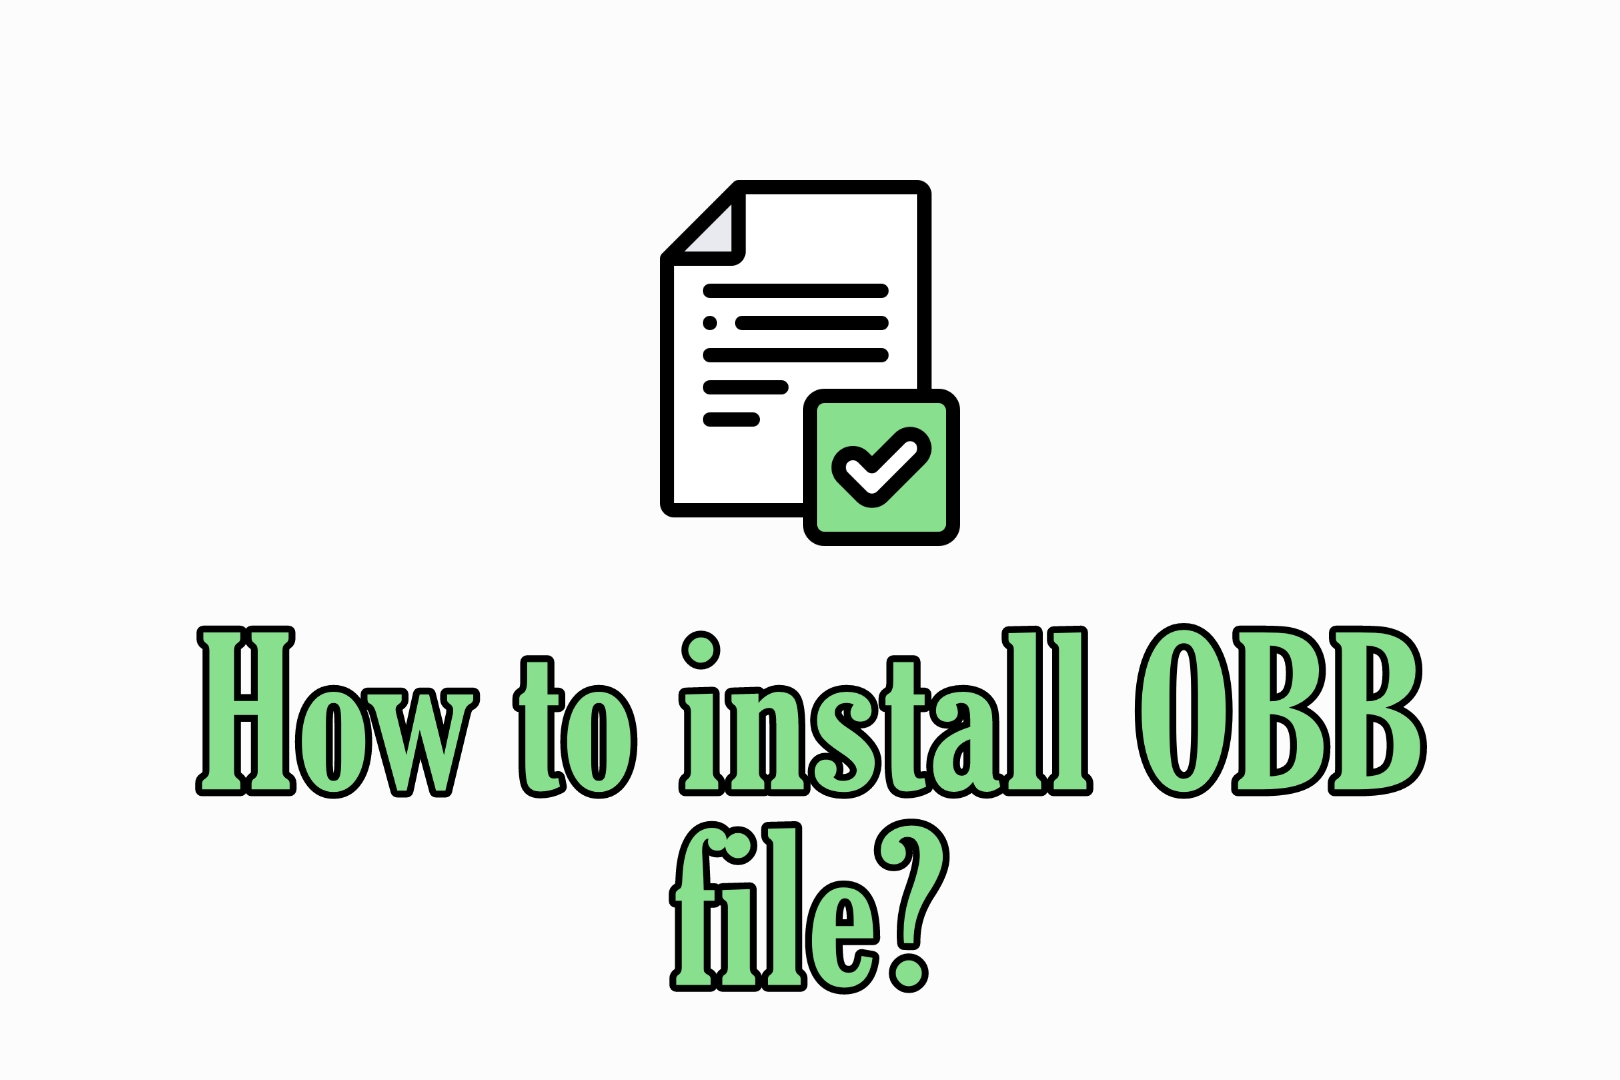 how to install OBB file?